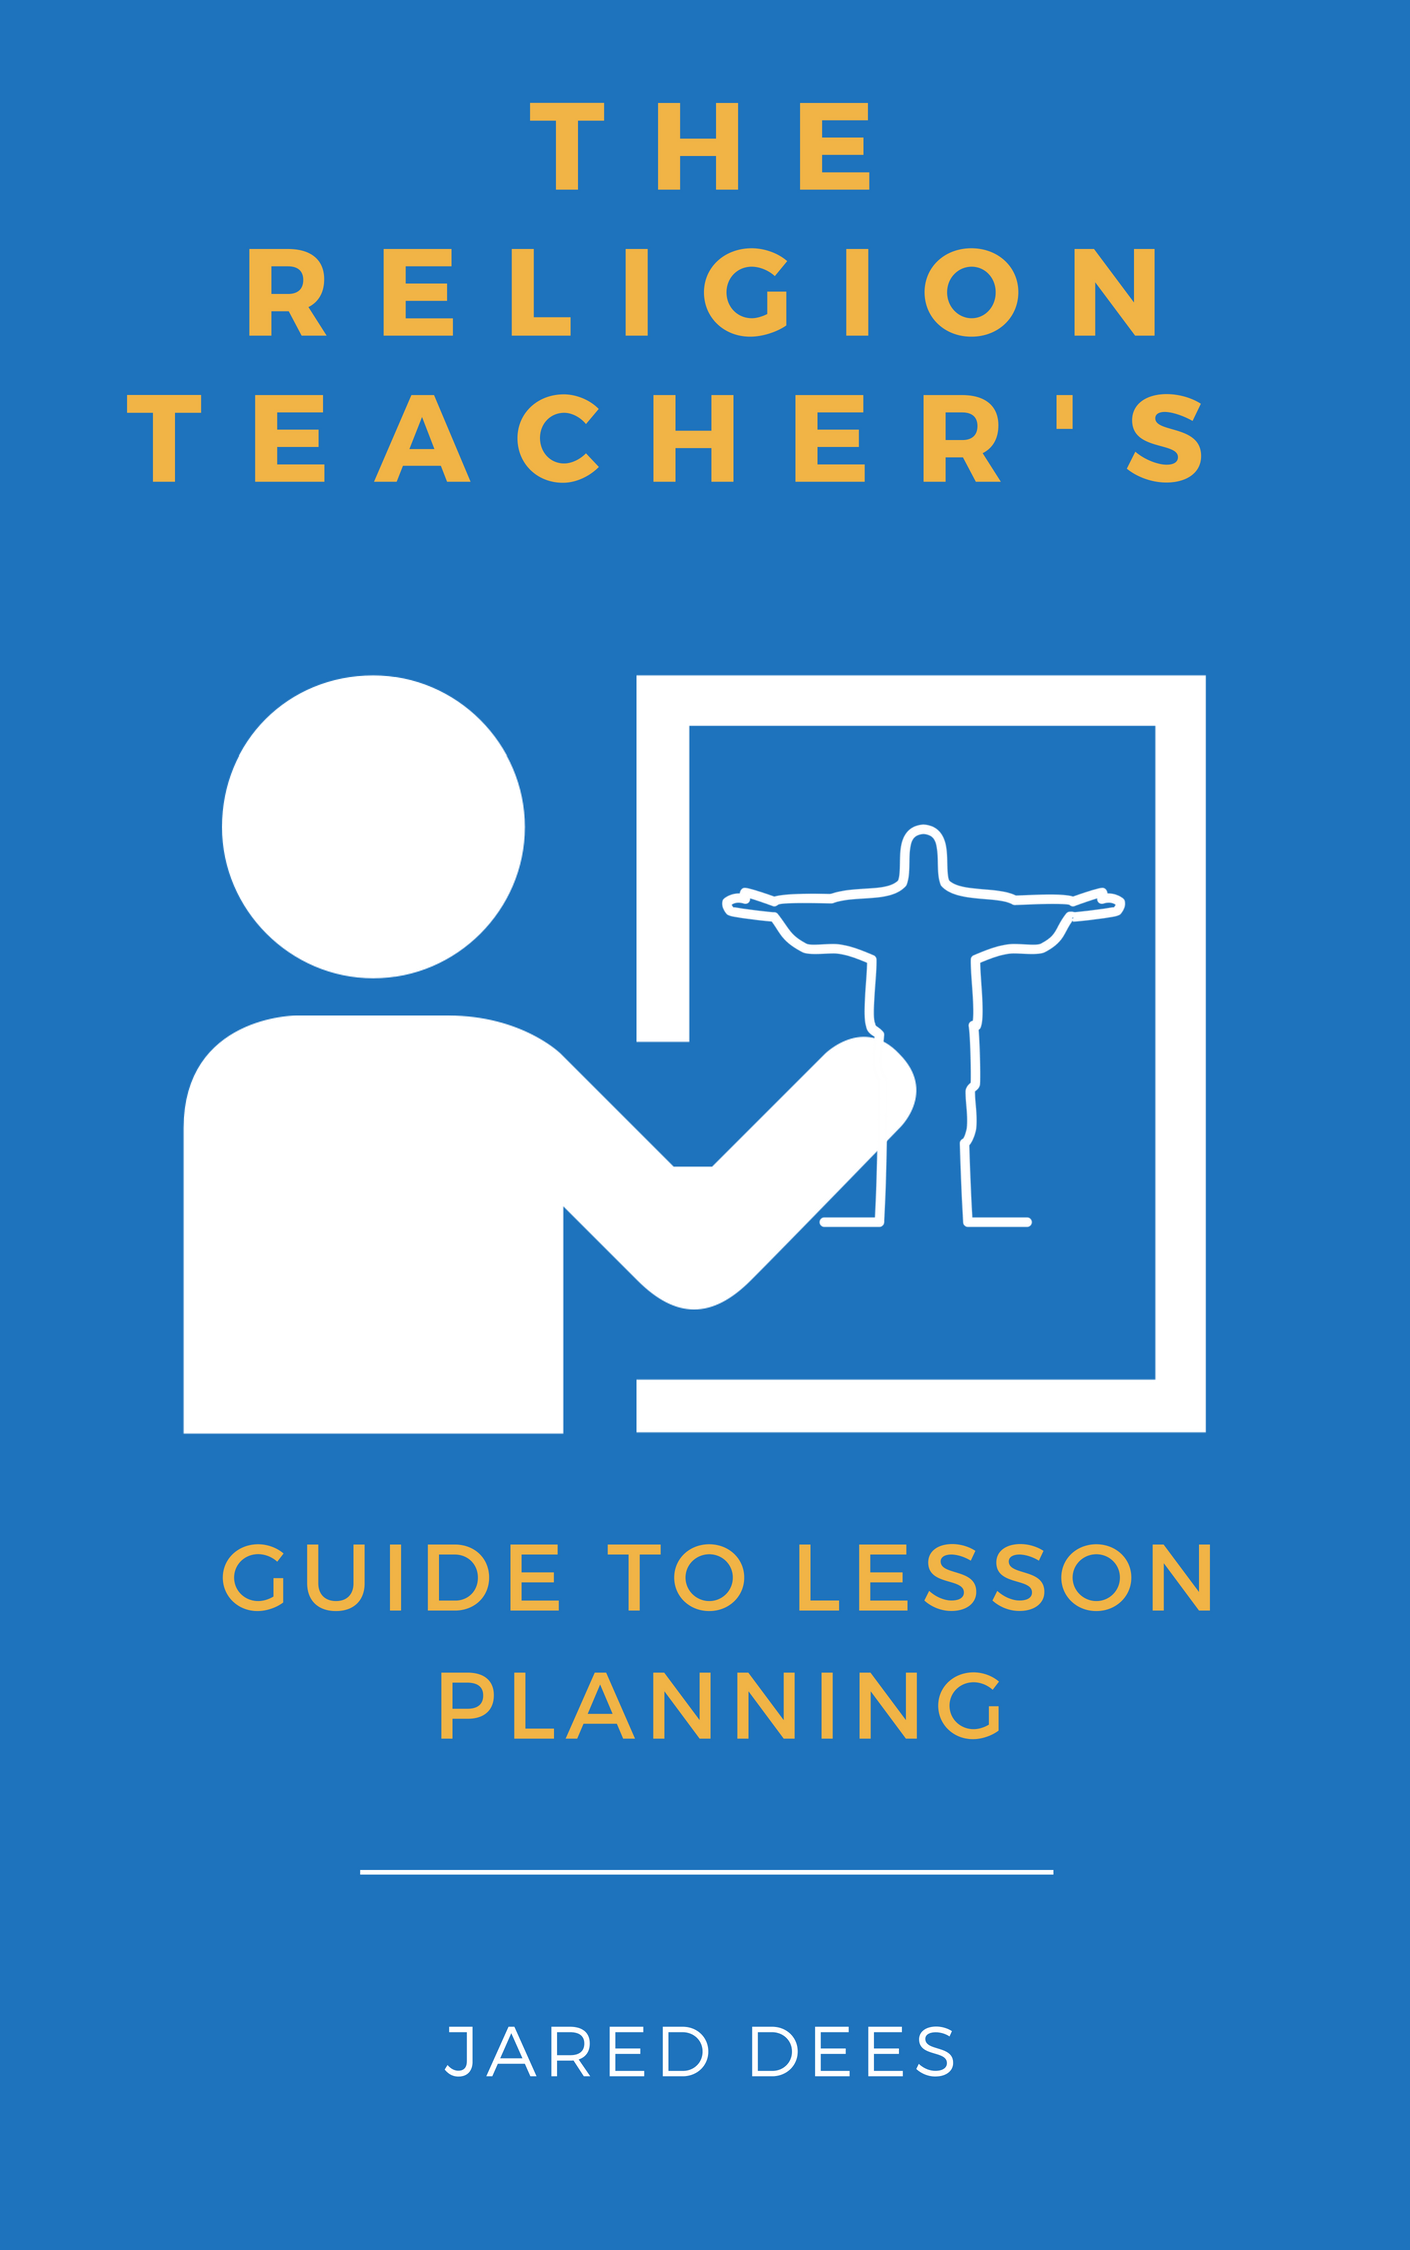 trt guide lesson planning 2018